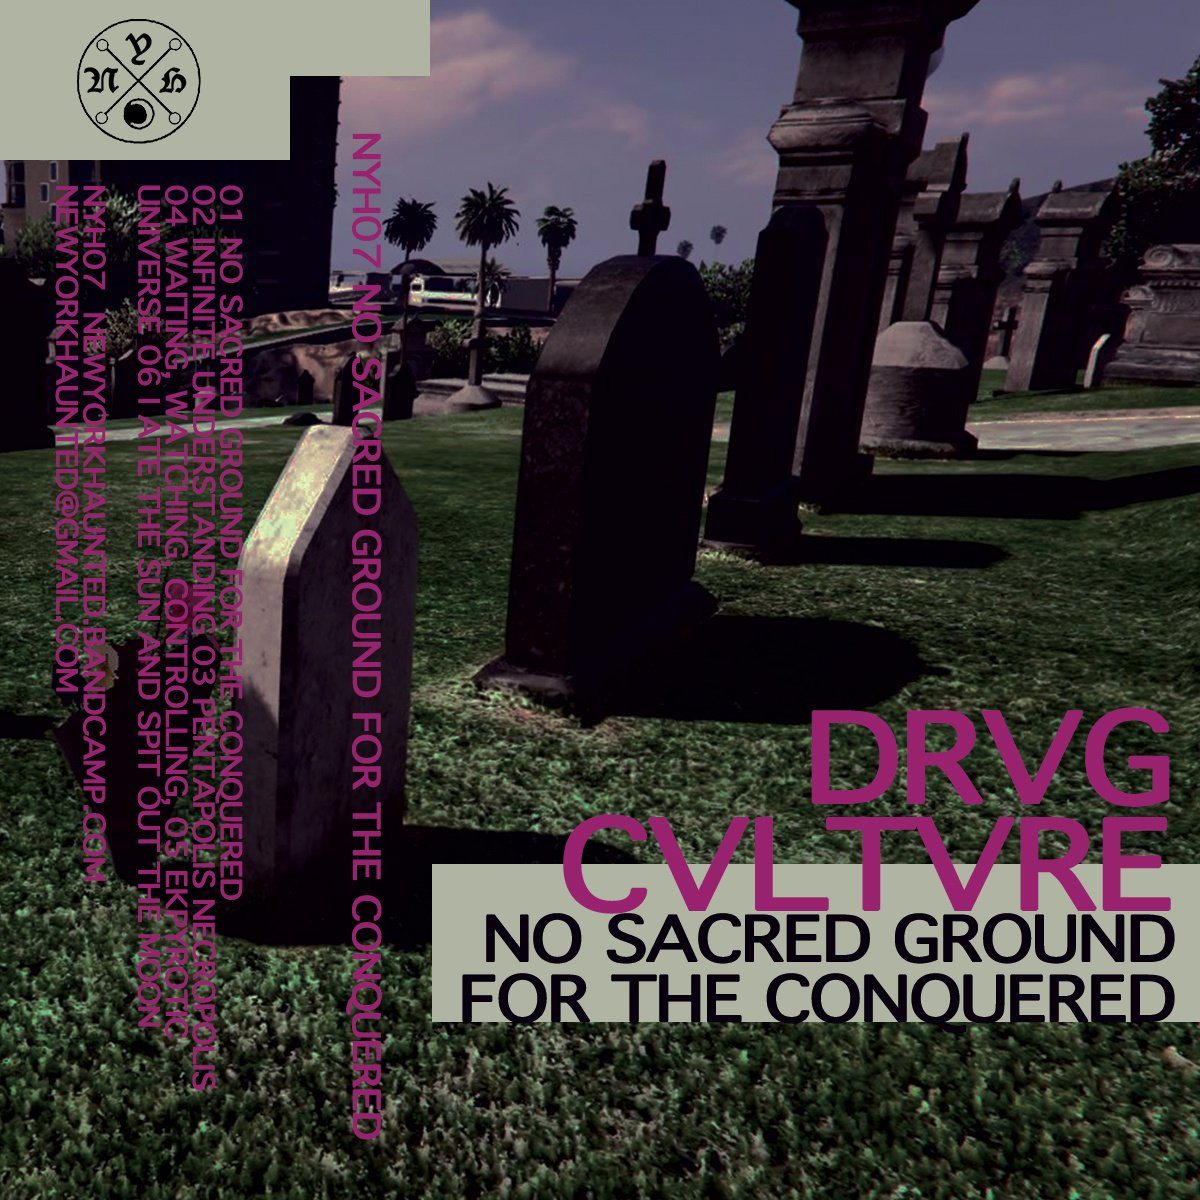 Drvg Culture: No Sacred Ground For The Conquered